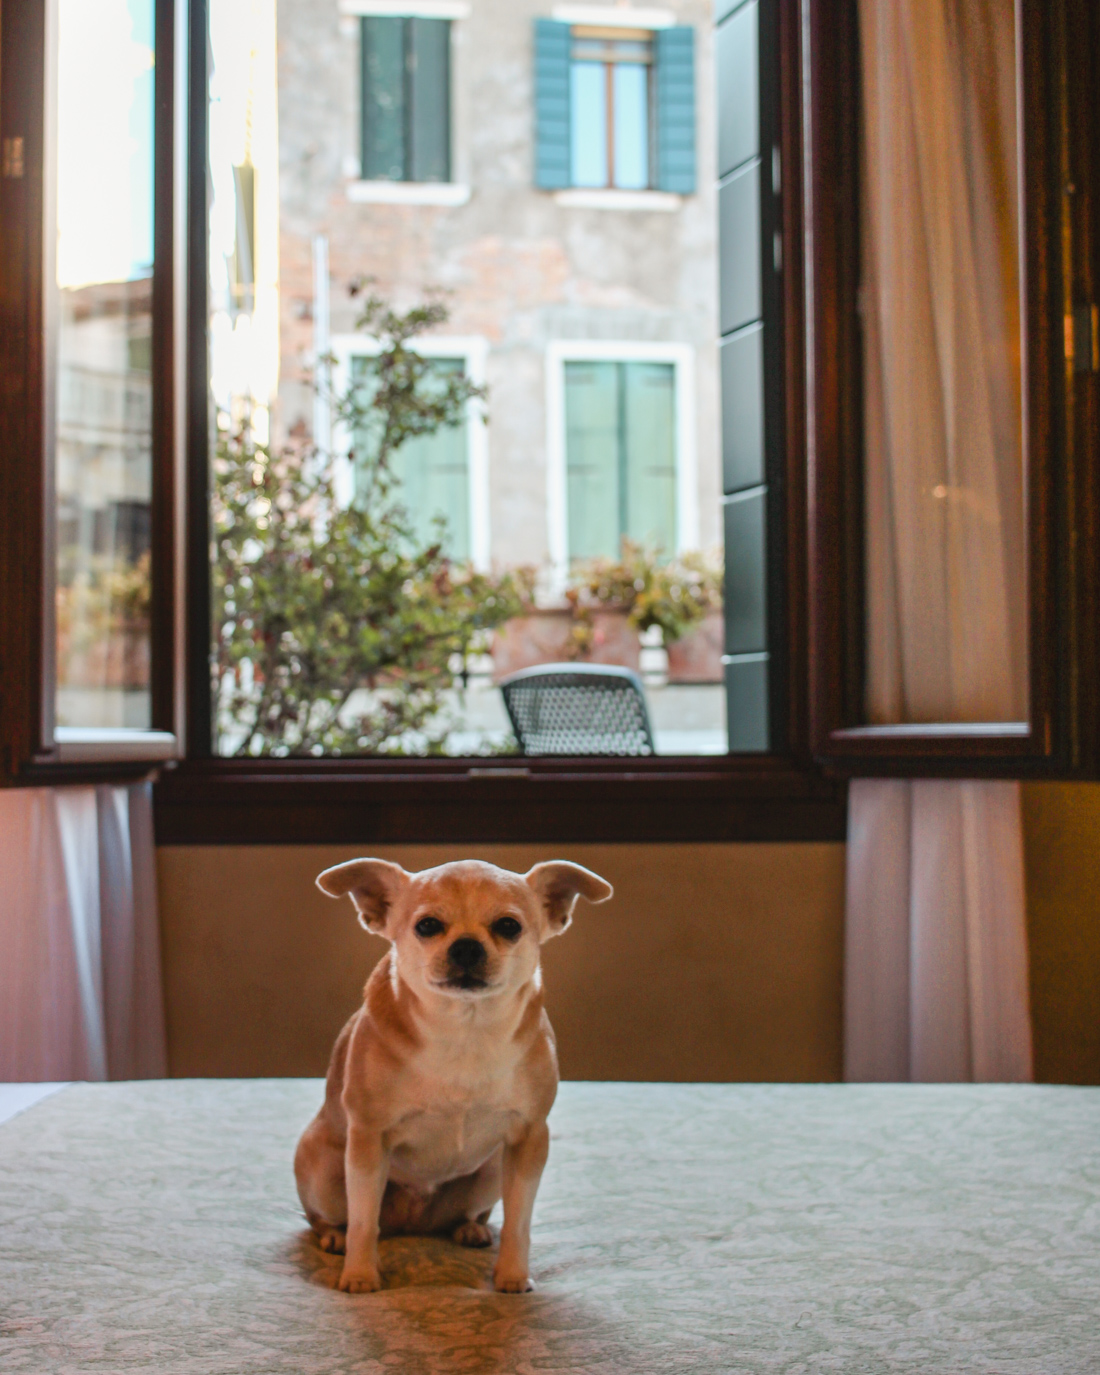 Hotels in Italy- Dog friendly